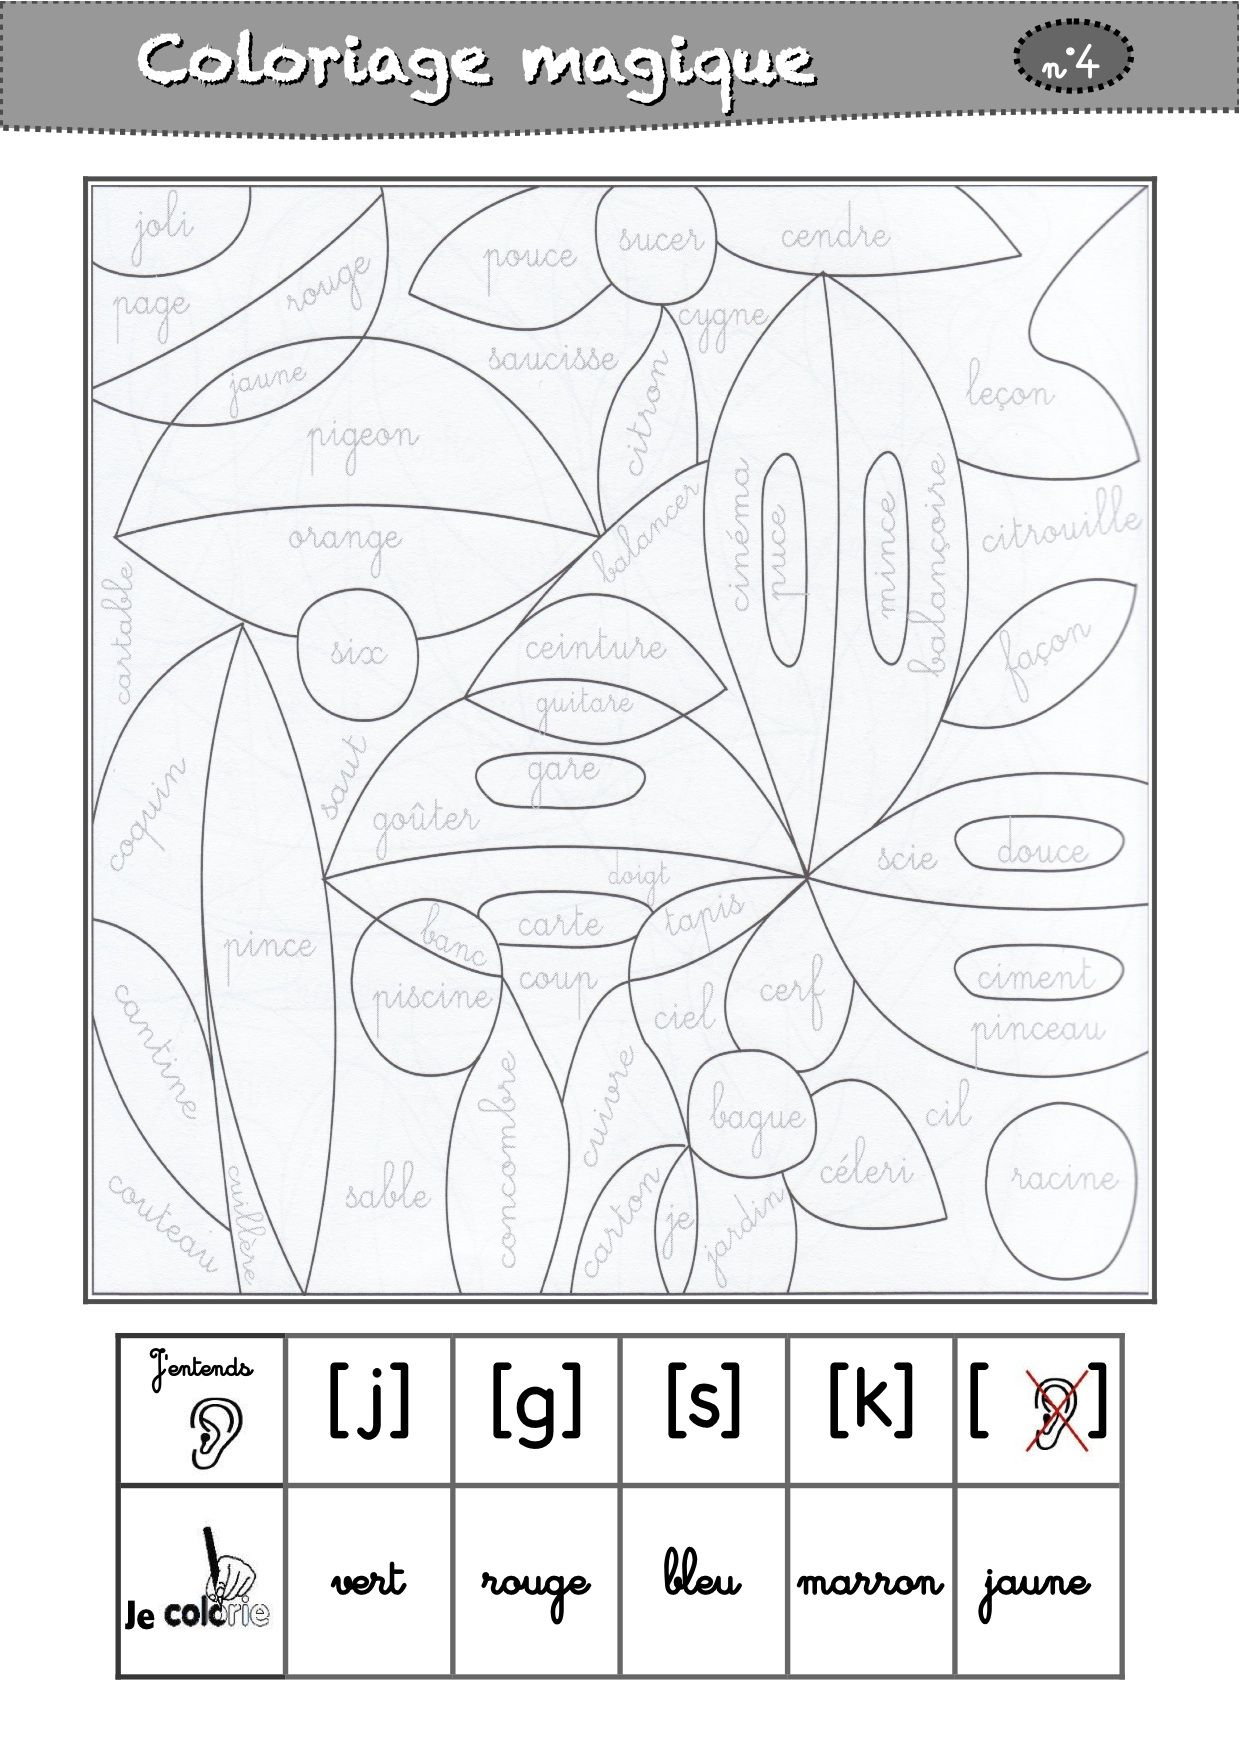 Coloriages Magiques Cp Coloriages Codes Coloring Pages School